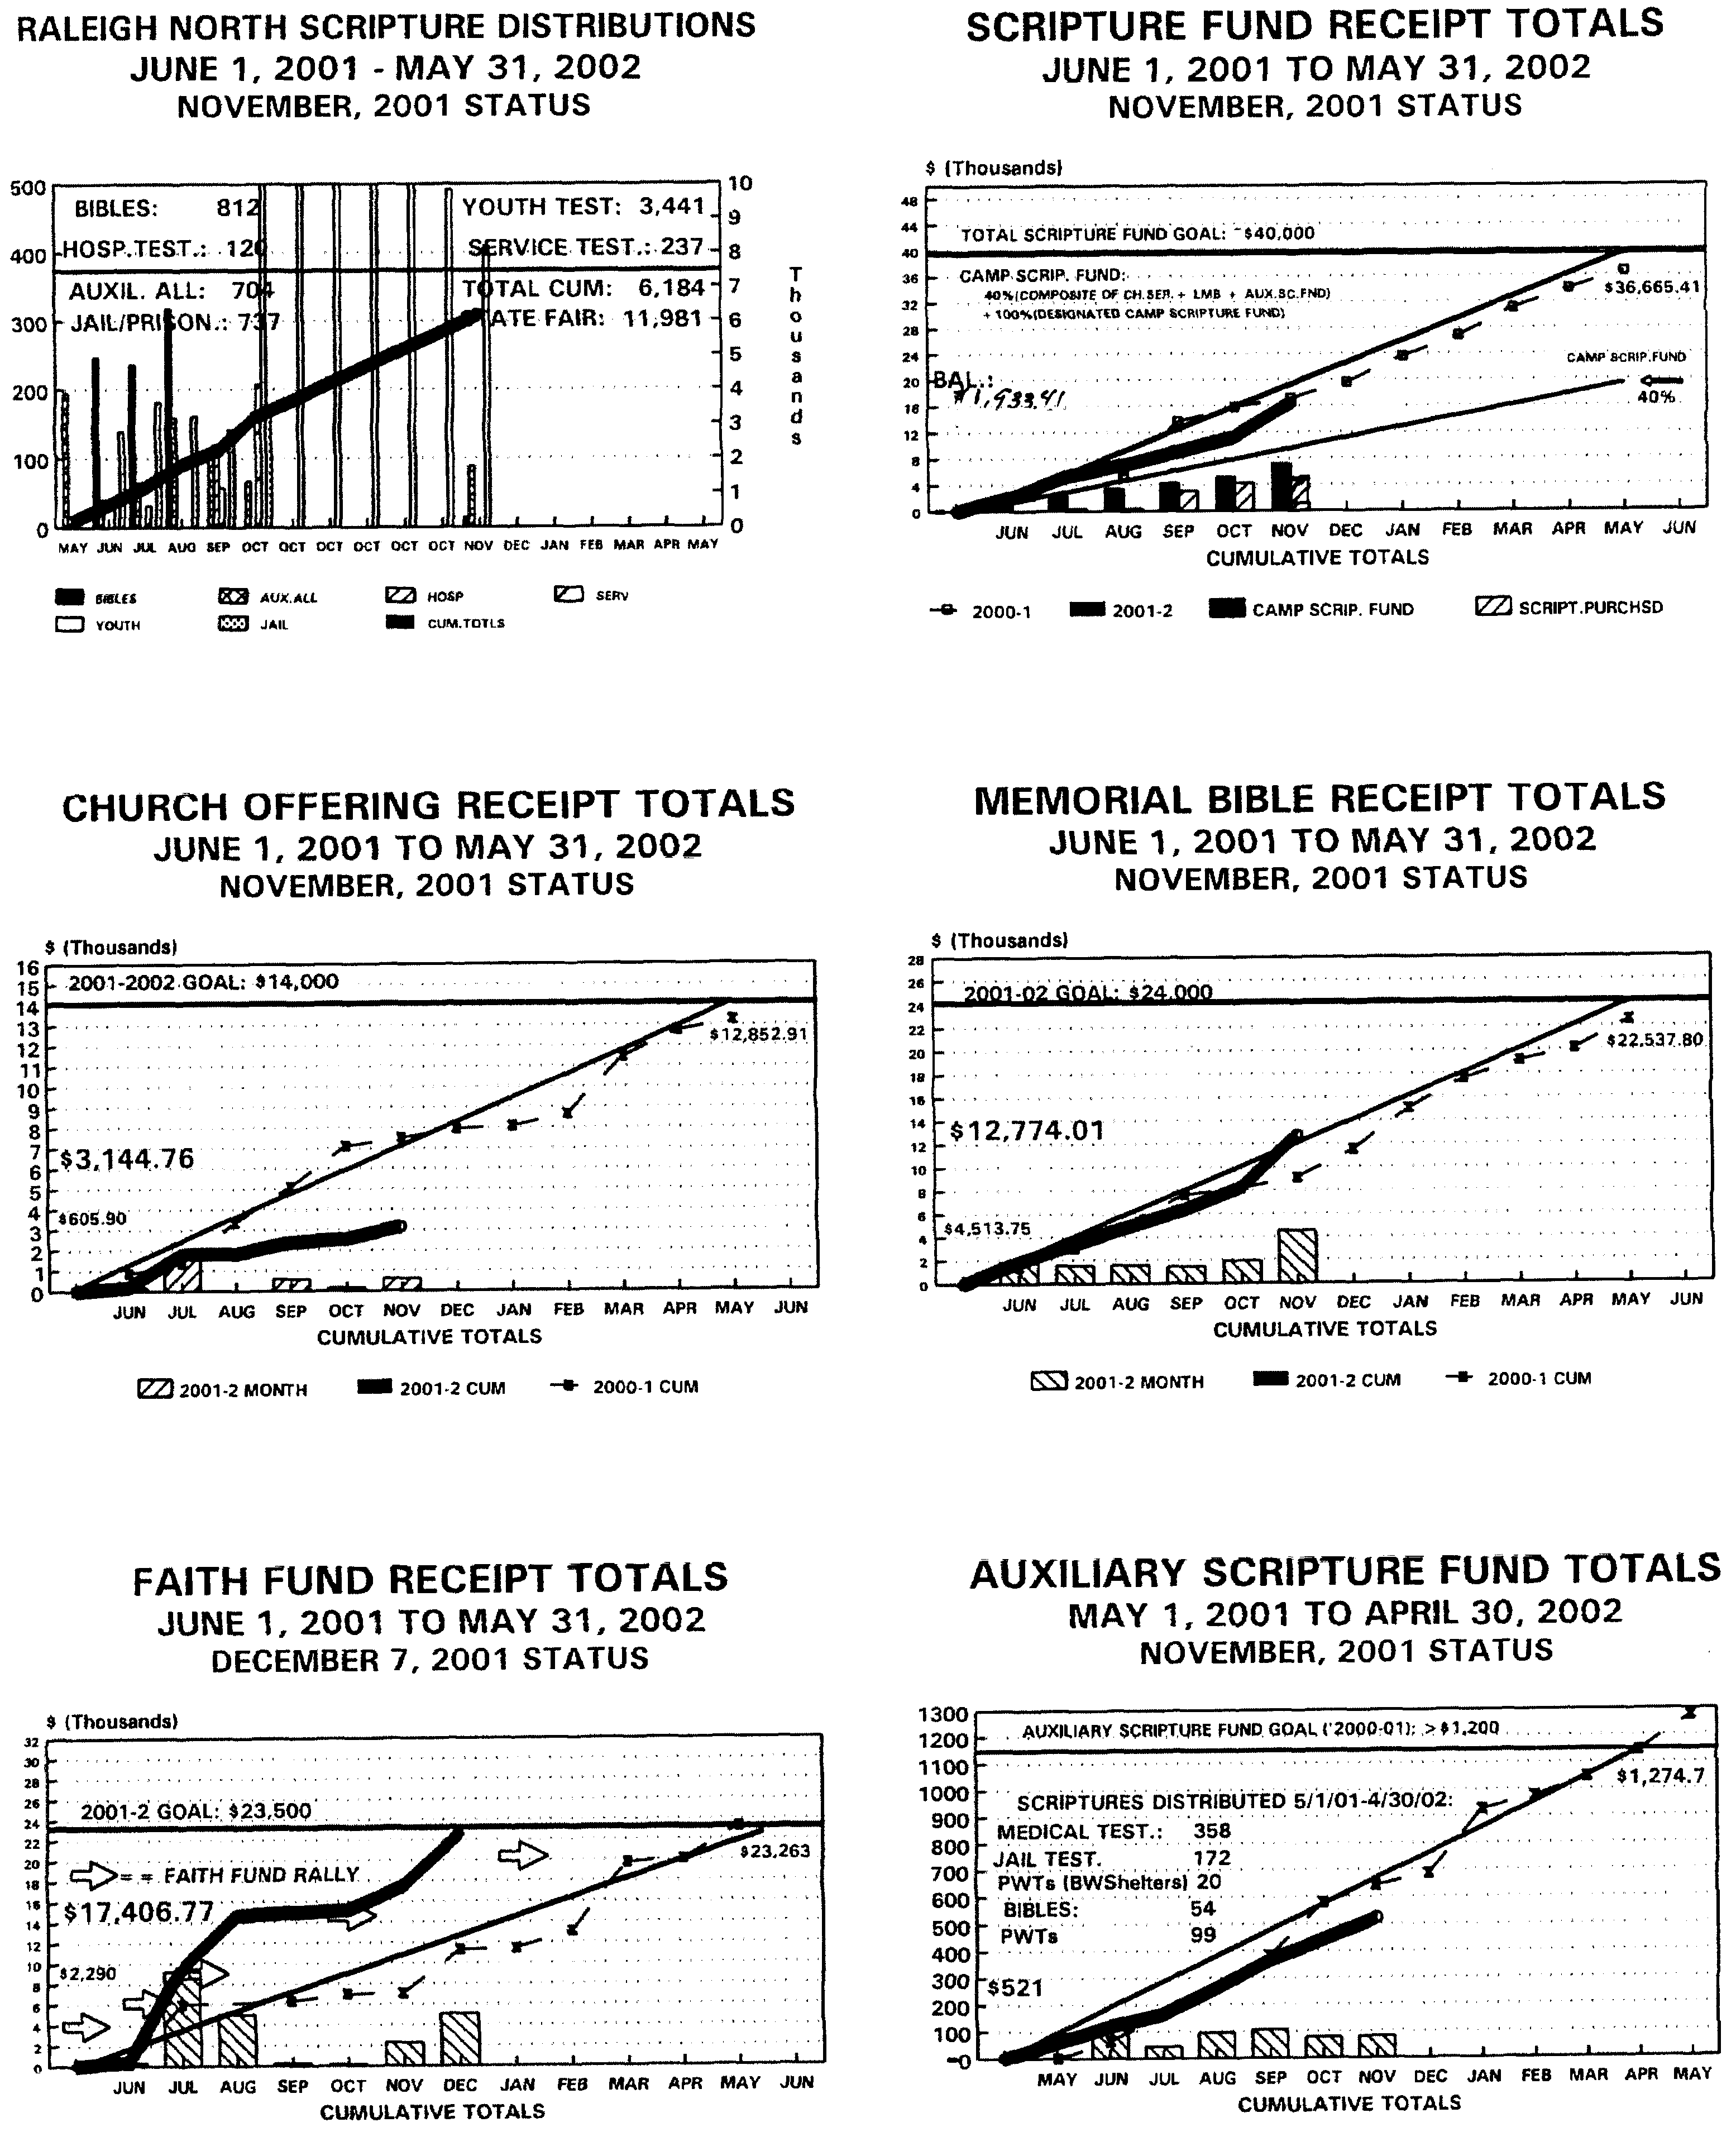 [December 2001 charts]